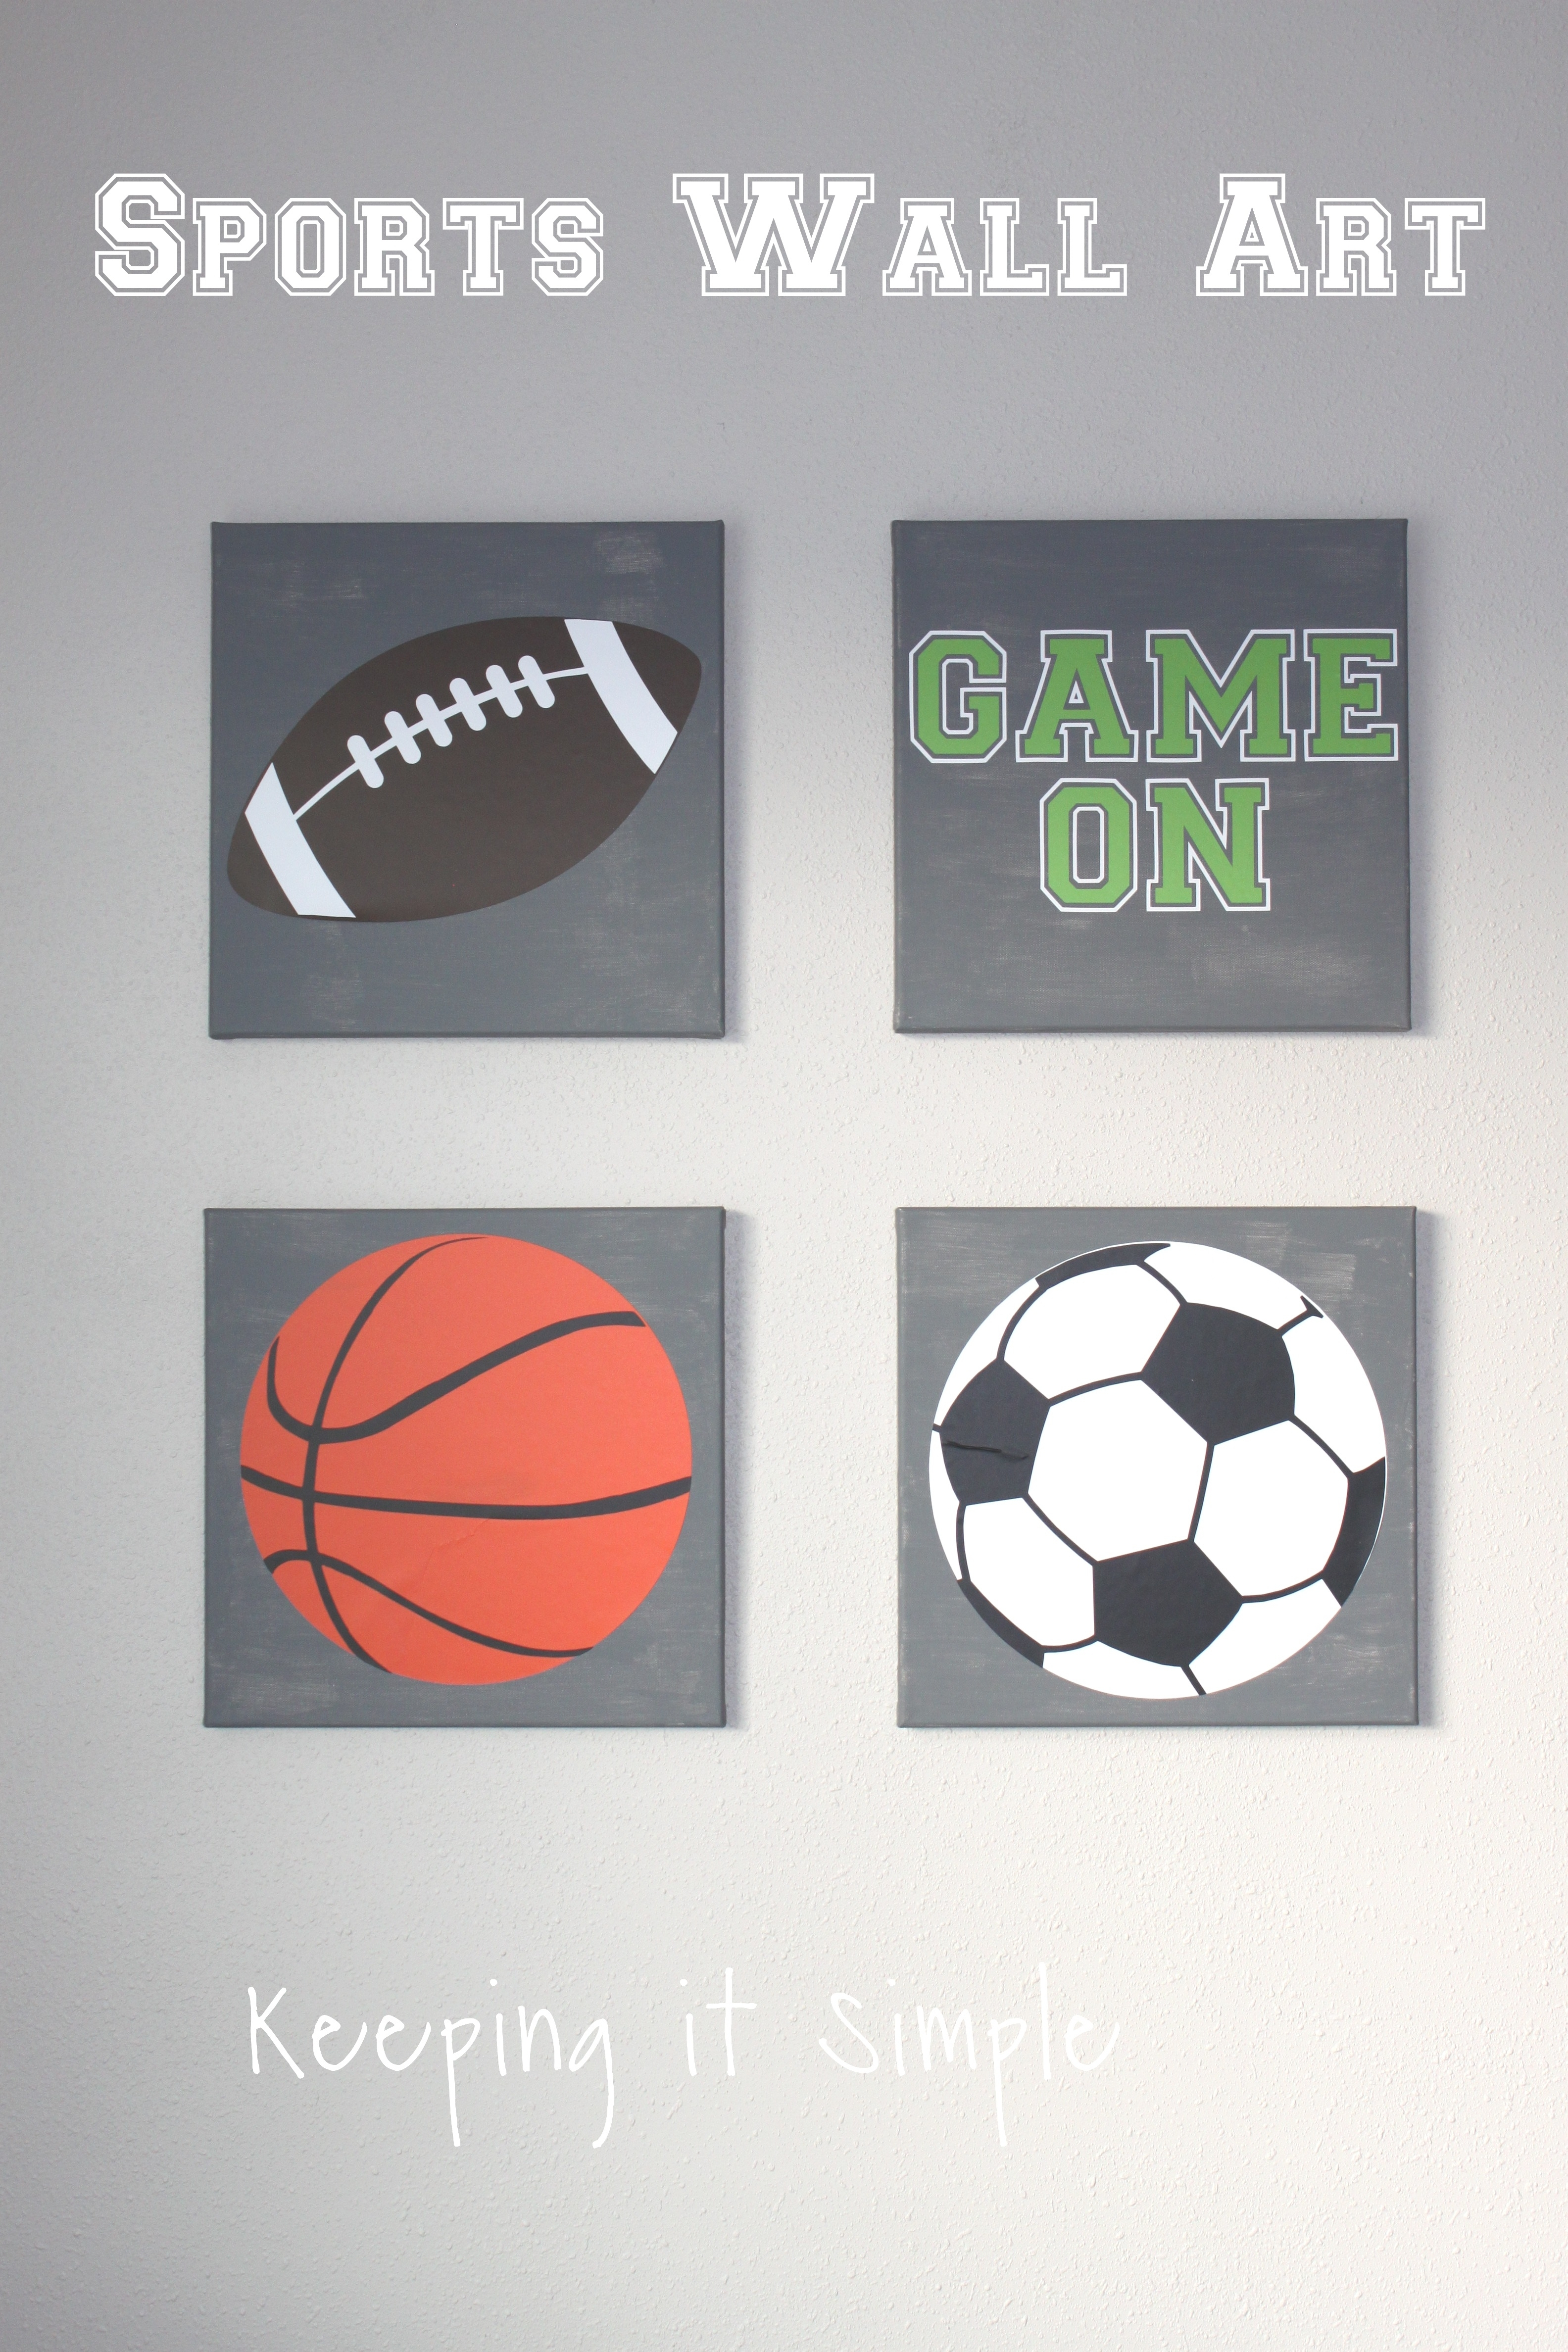 Sports Wall Art With Svg Cut File • Keeping It Simple For Most Up To Date Sports Wall Art (View 15 of 20)